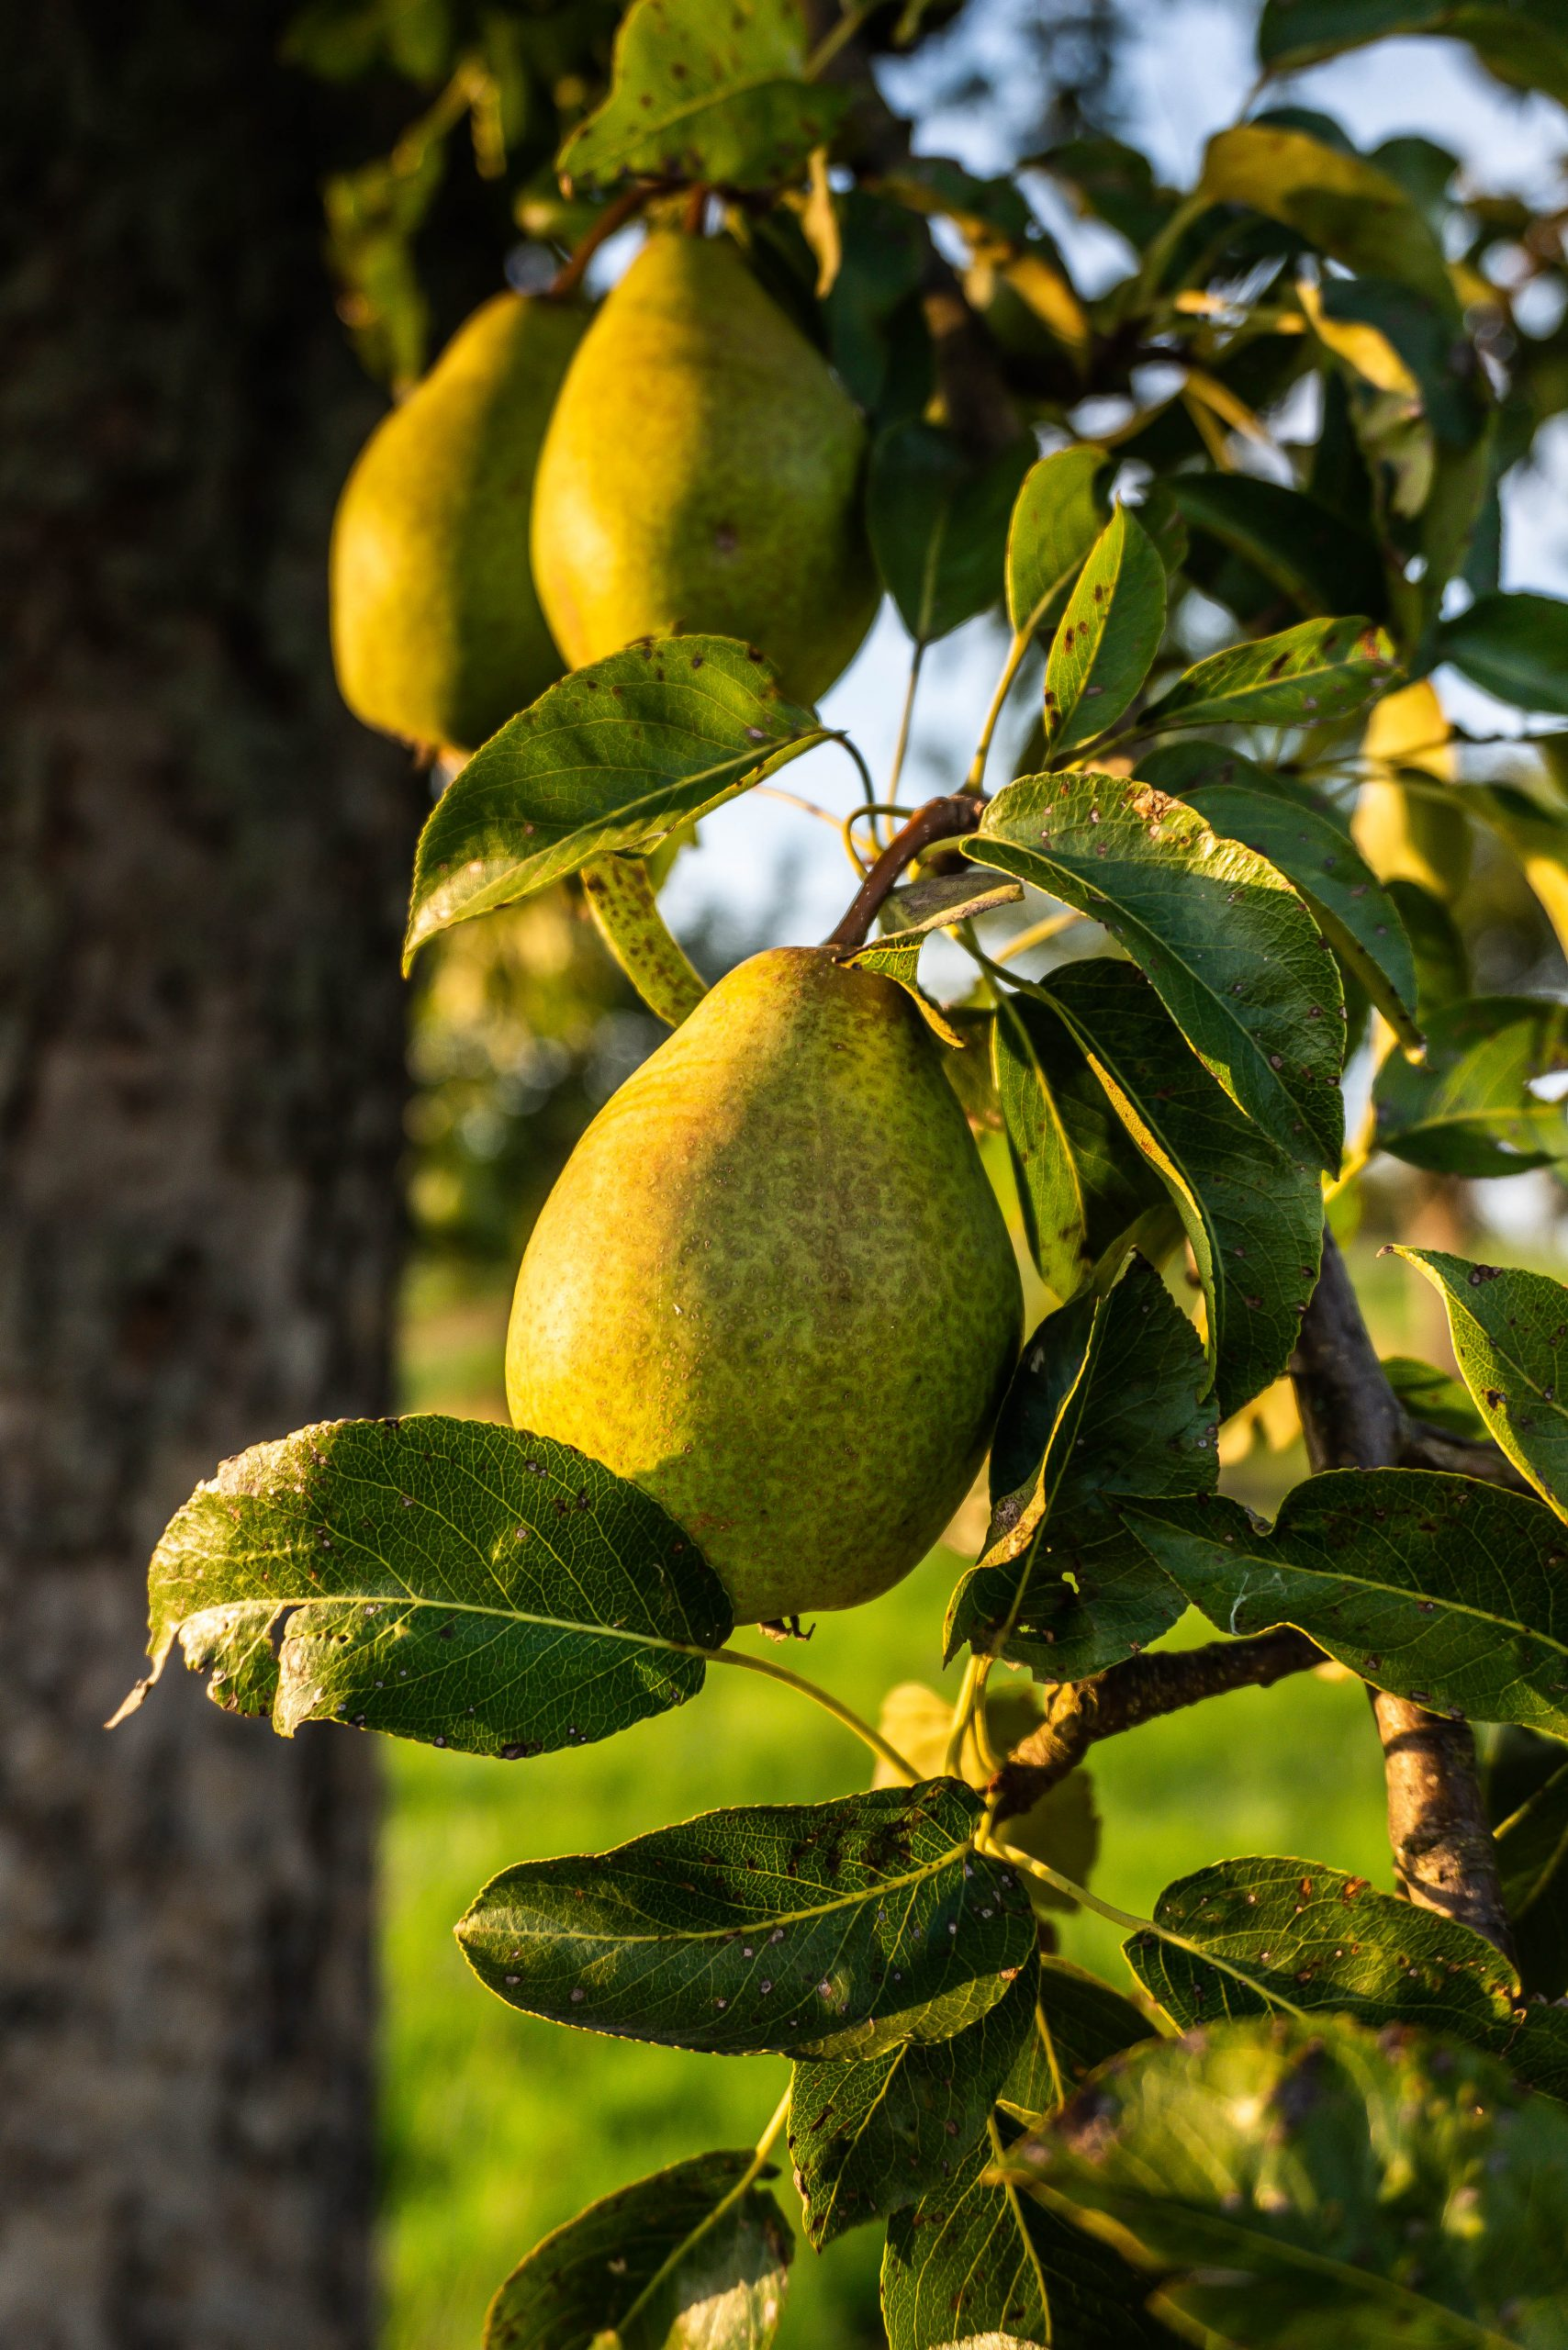 Pears hanging on a pear tree